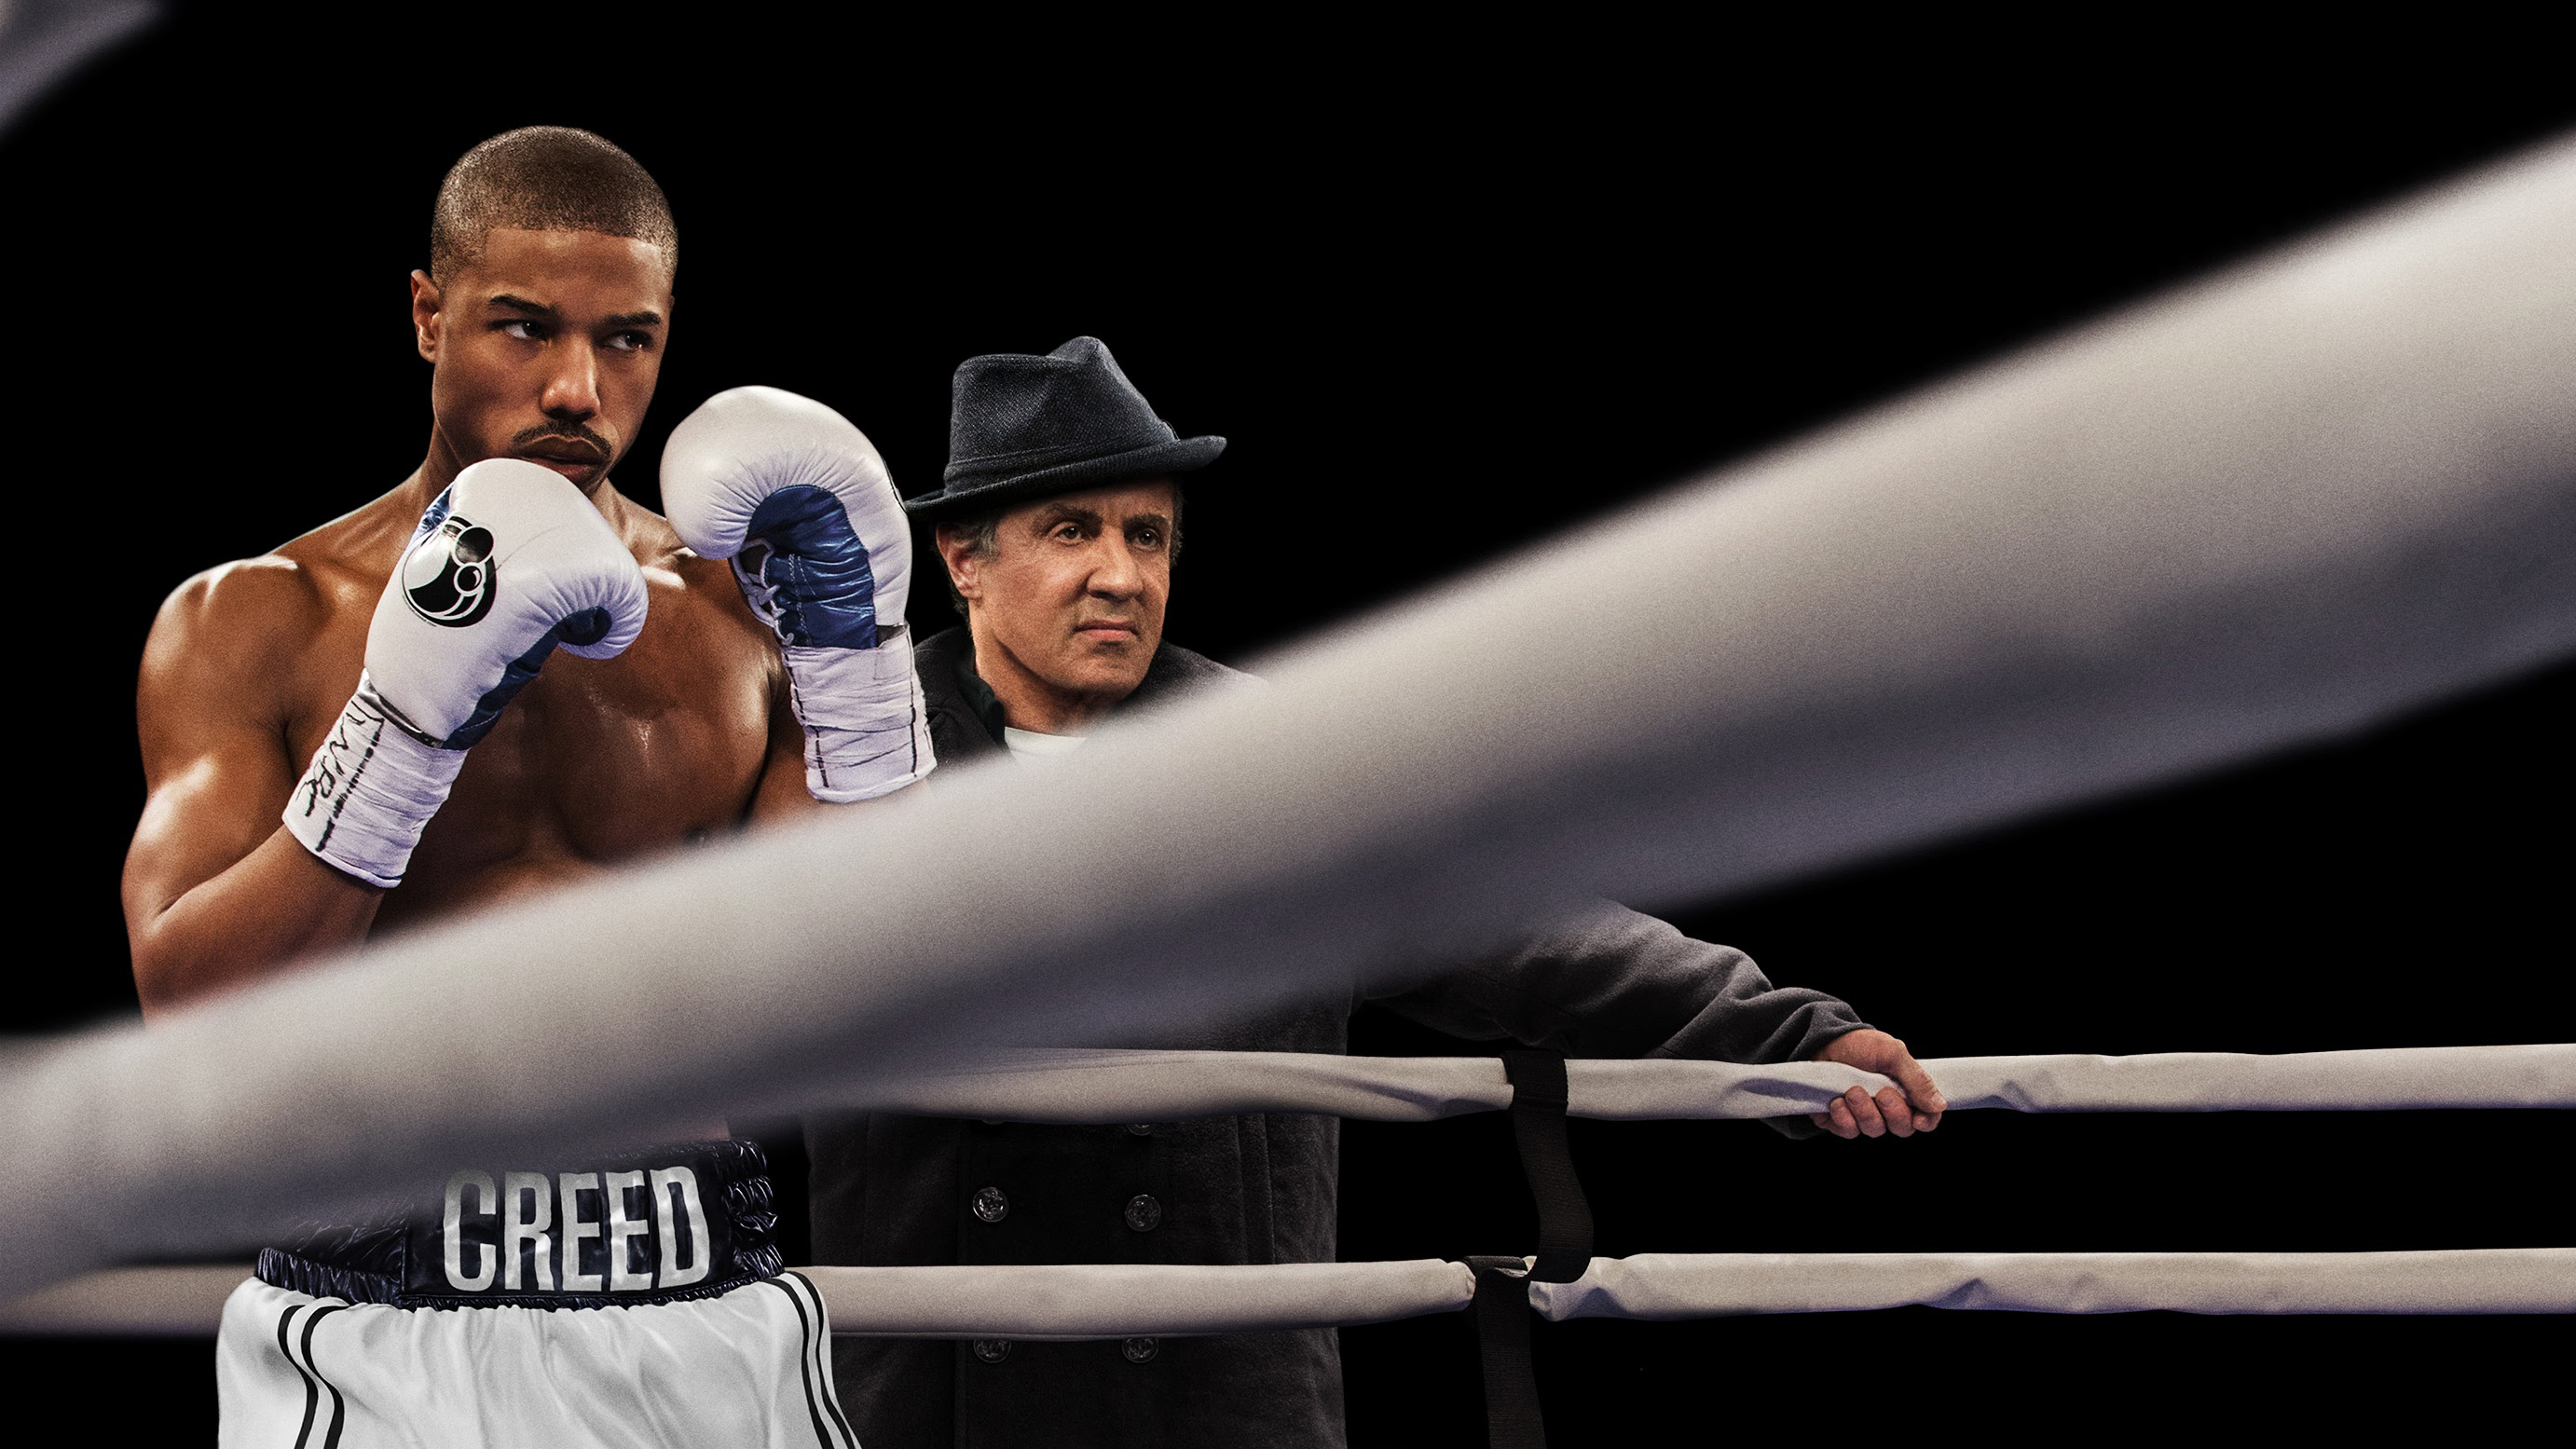 Michael B Jordan And Sylvester Stallone In Creed Hd Movies 4k Wallpapers Images Backgrounds Photos And Pictures